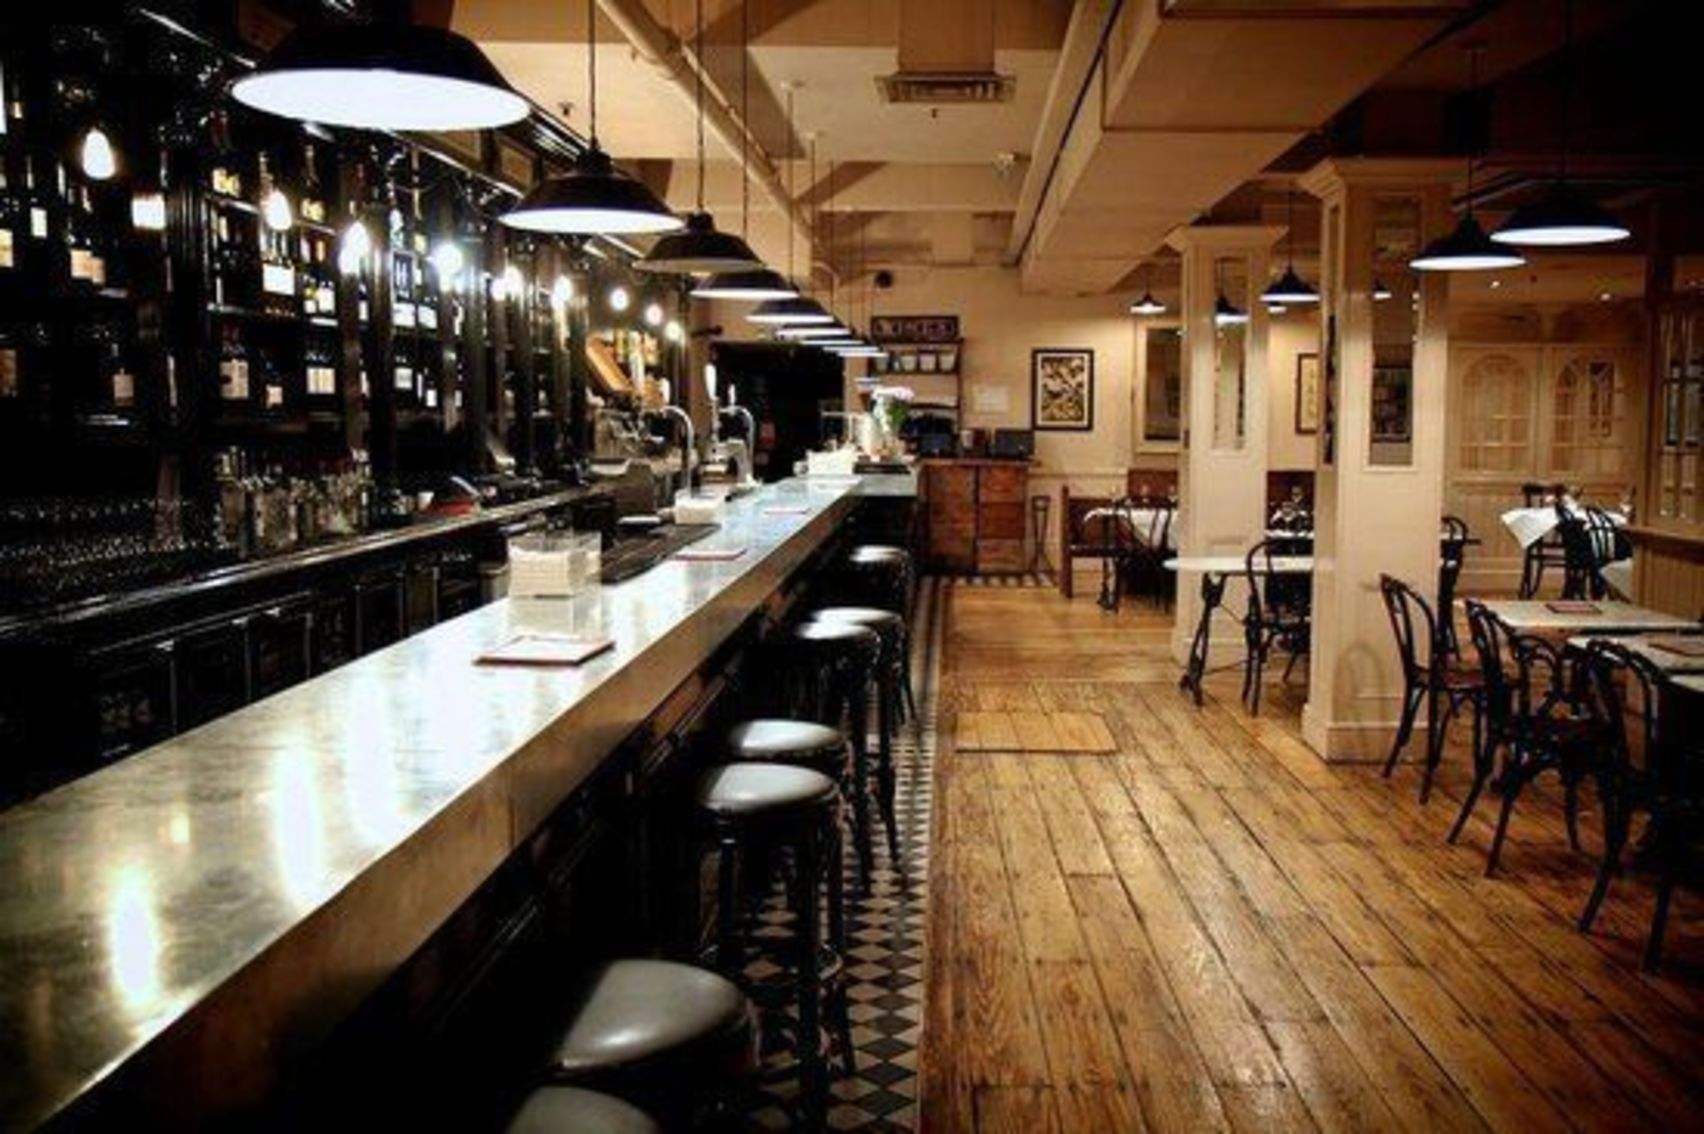 Lunch, Exclusive Hire, Bedford & Strand